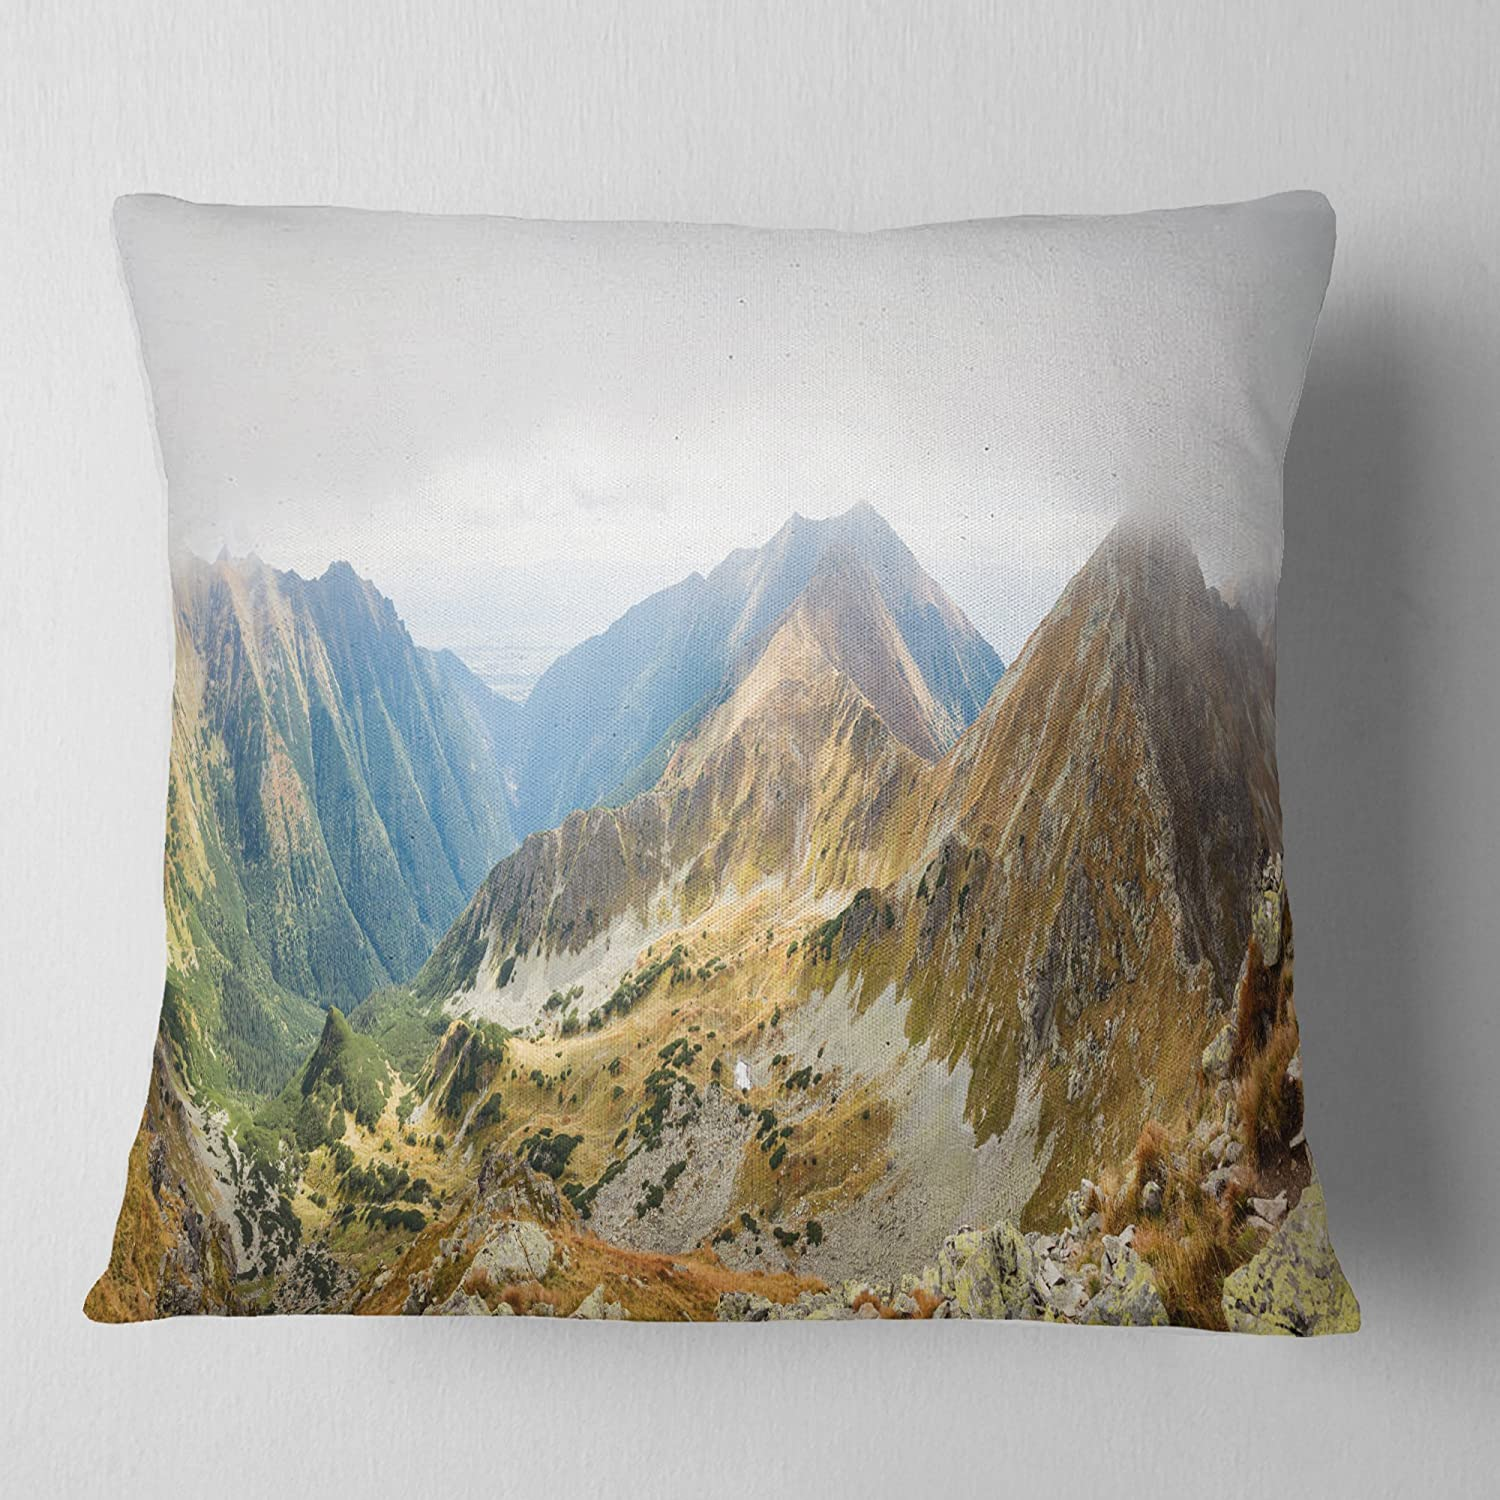 Sofa Throw Pillow 26 in Designart CU11041-26-26 Ostry Rohac and Placlive Peaks Landscape Printed Cushion Cover for Living Room x 26 in in